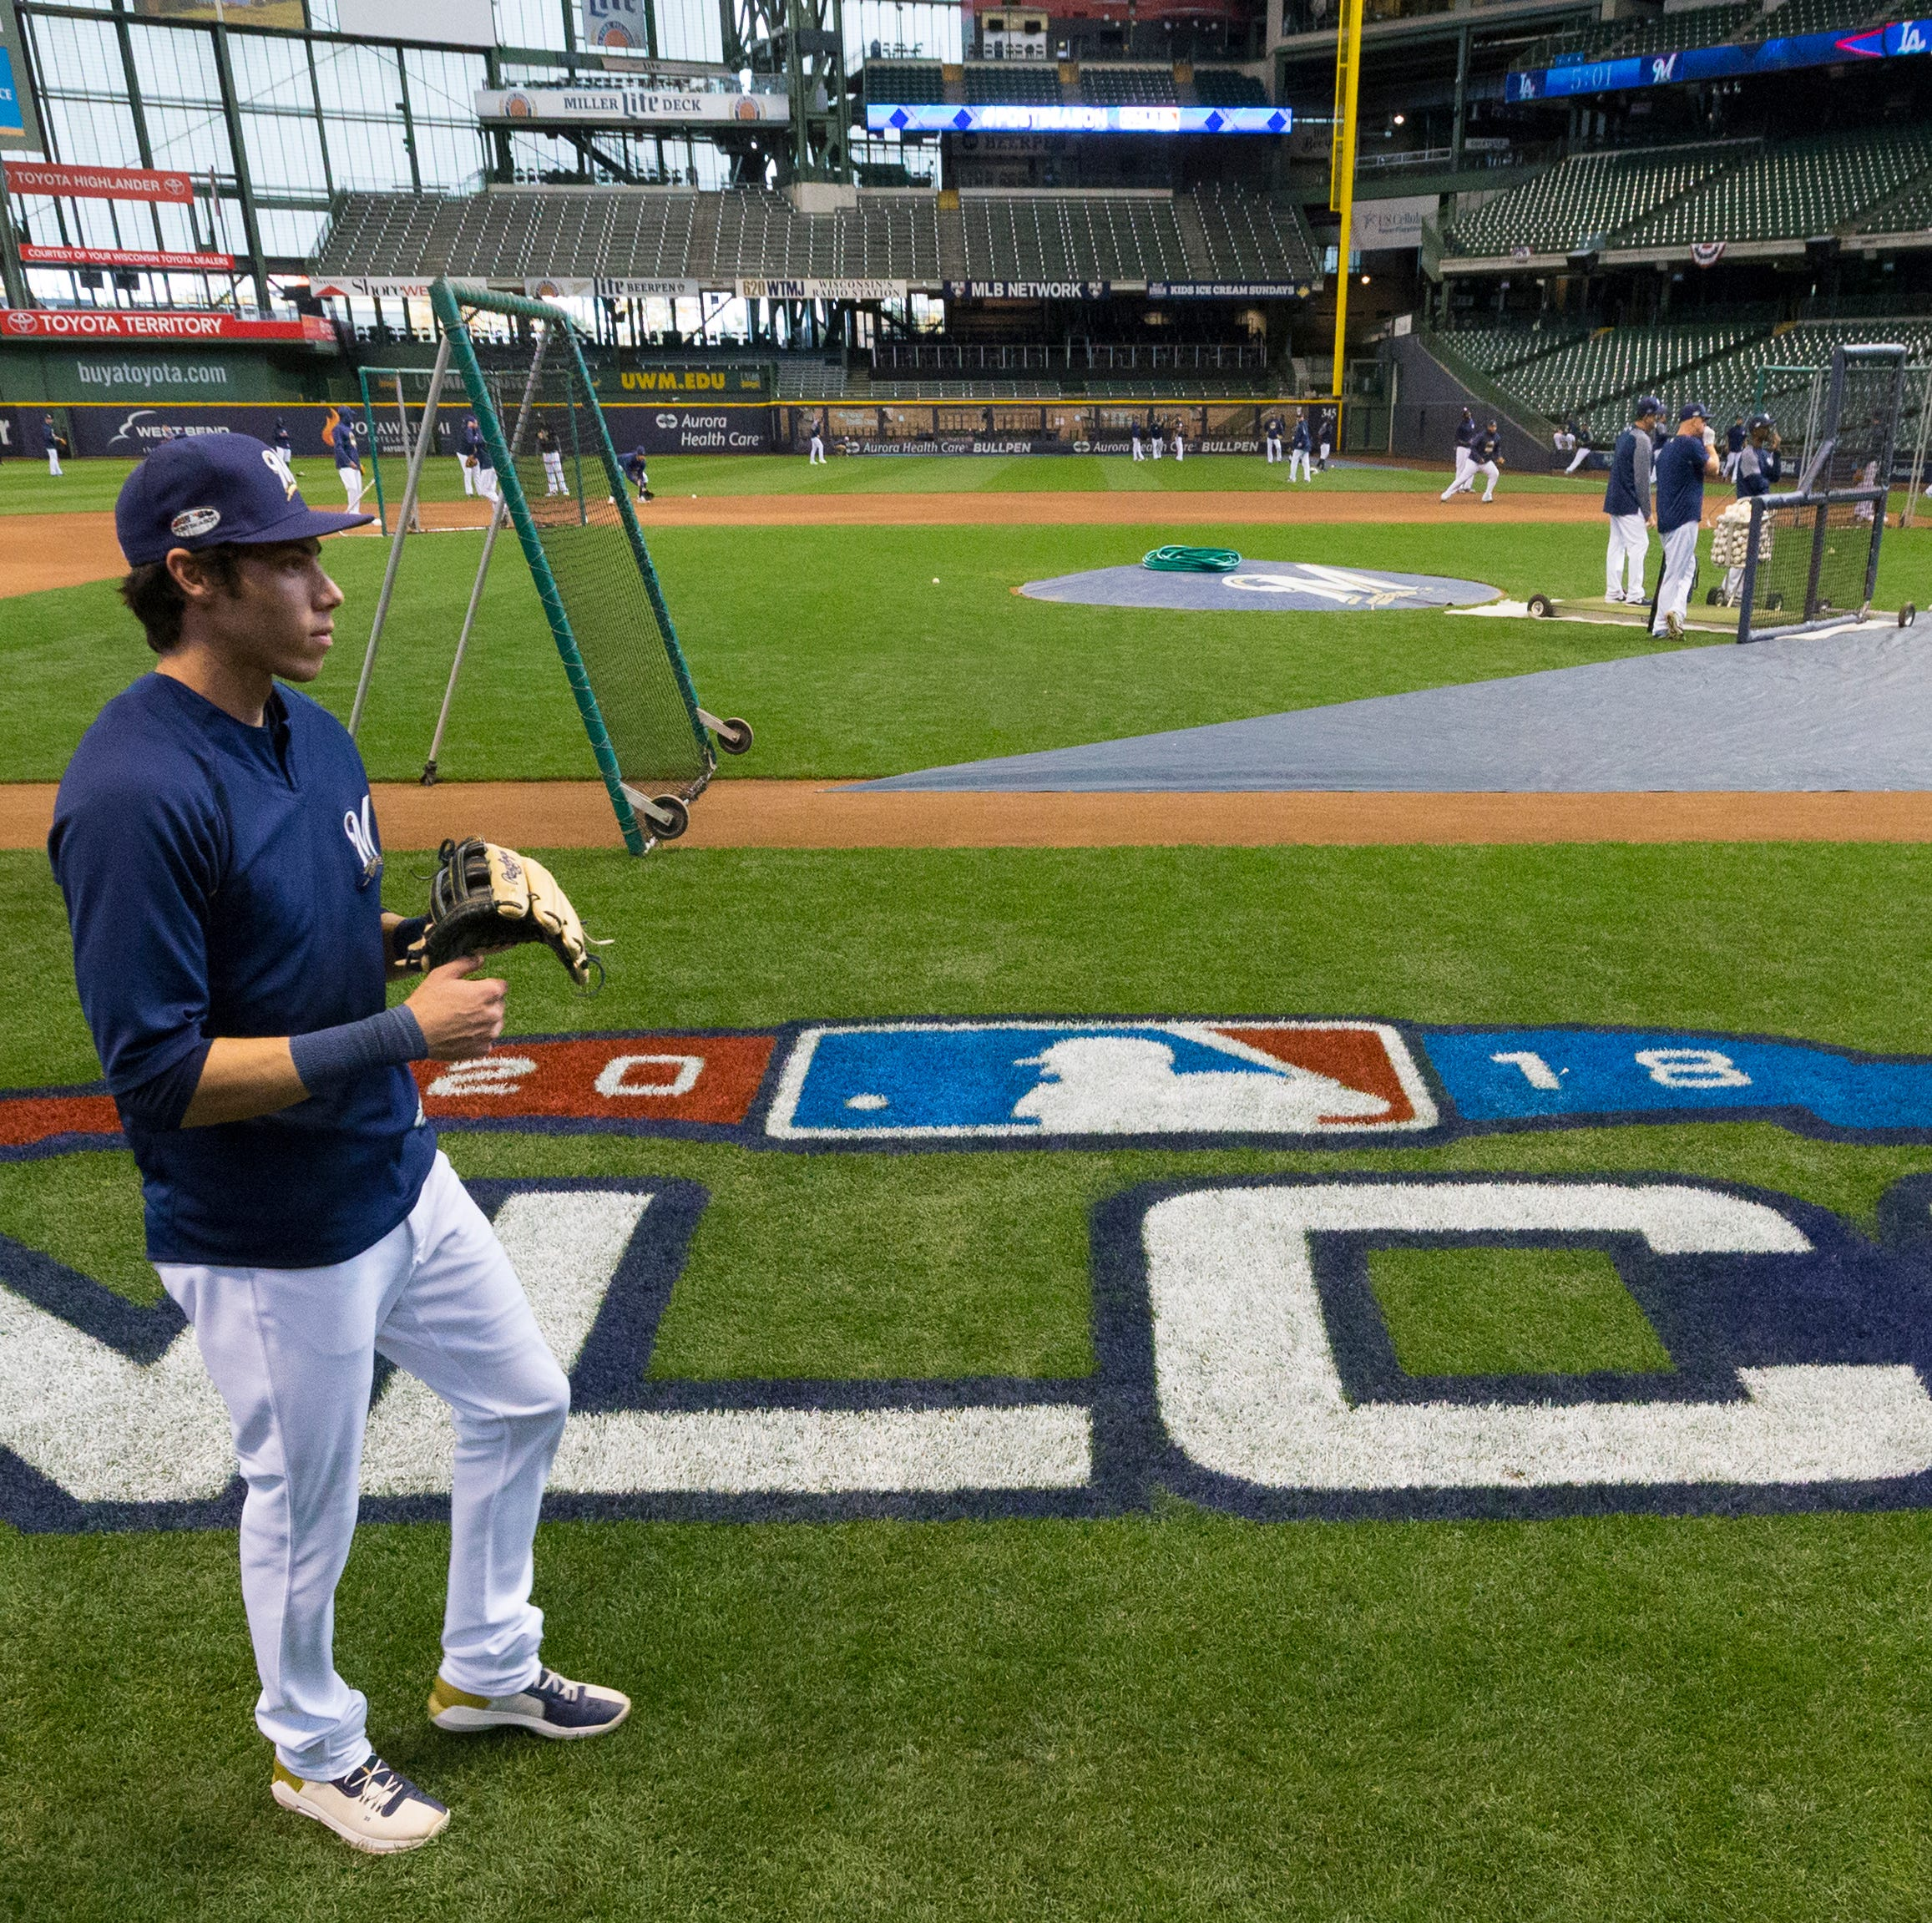 Brewers announce availability of more tickets for tonight's NLCS Game 1